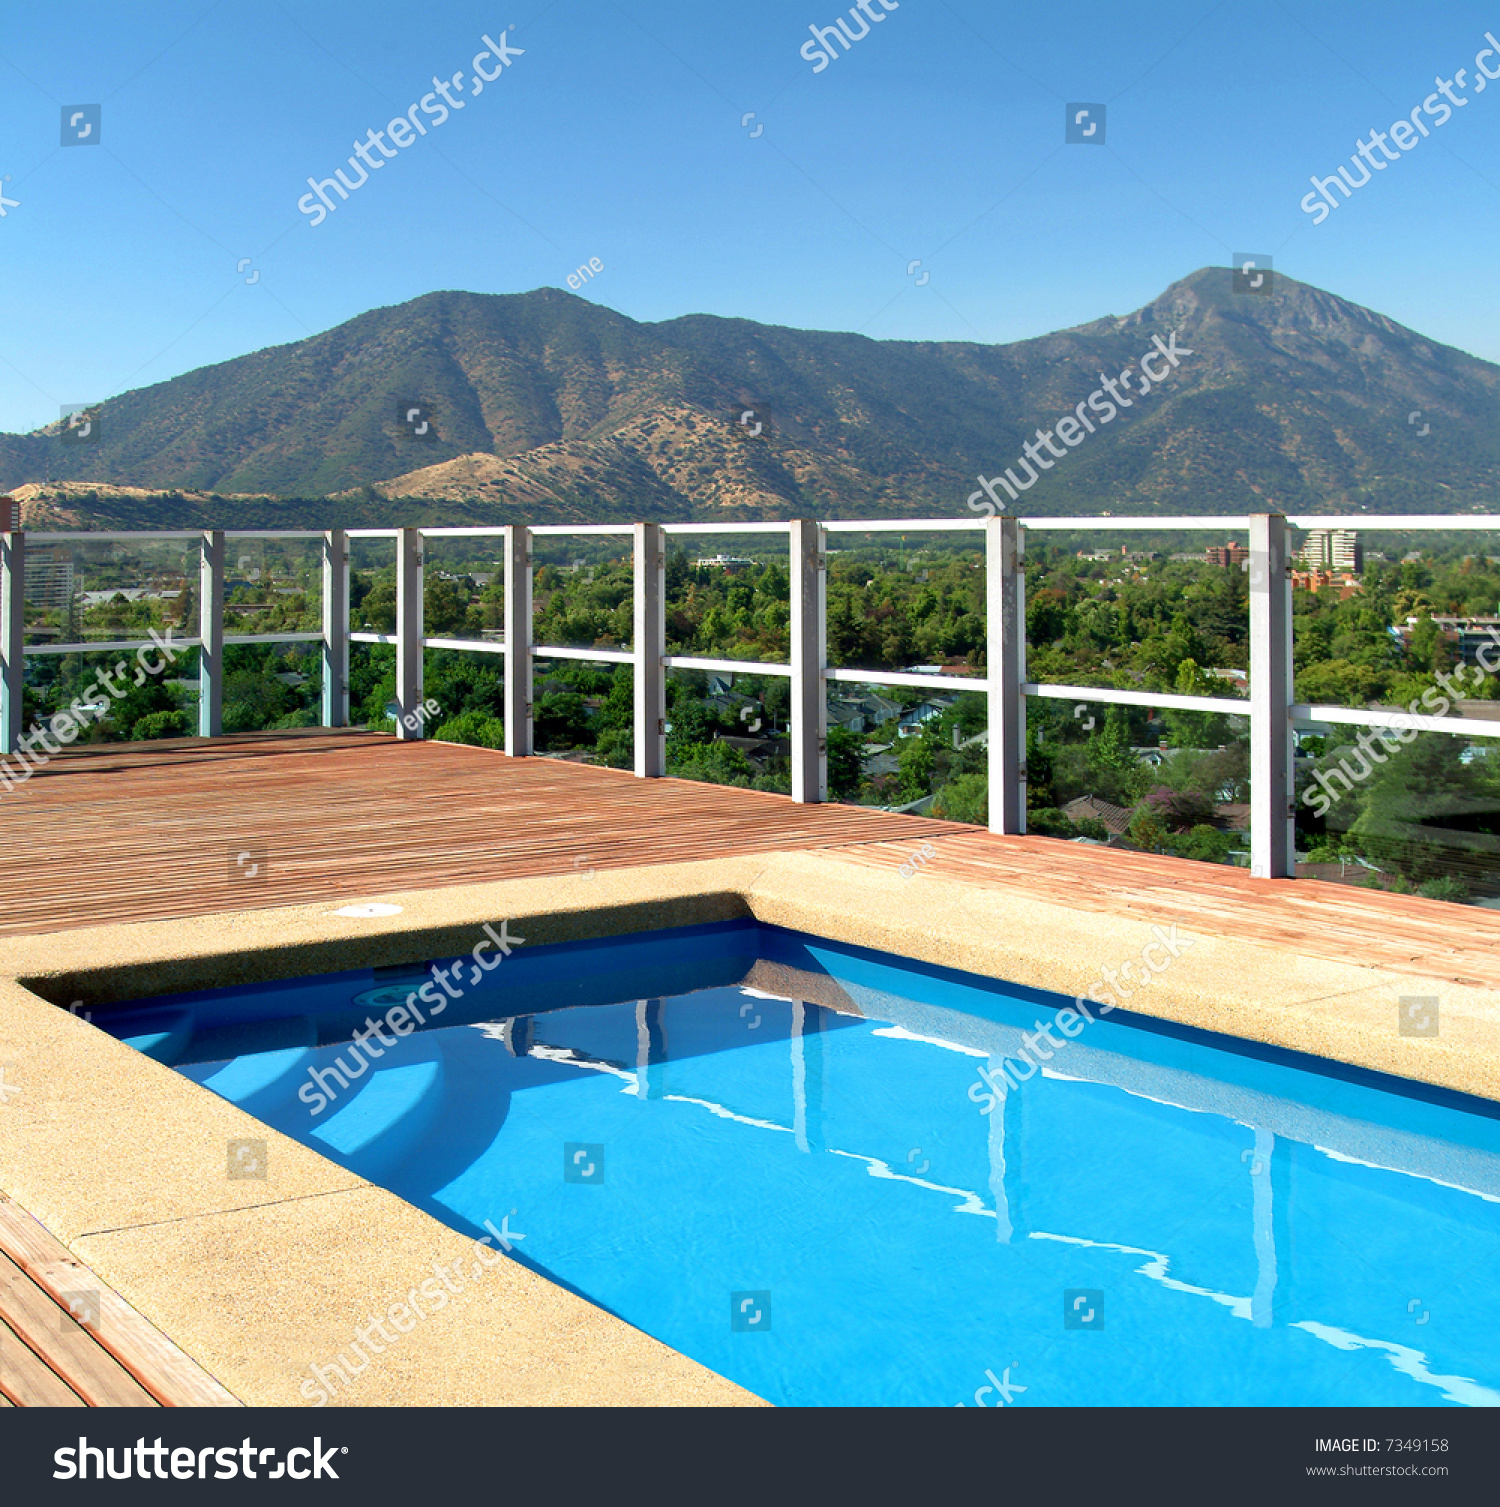 View Of A Crystal Clear Water Swimming Pool With Wood Platform And Landscape With Vegetation And